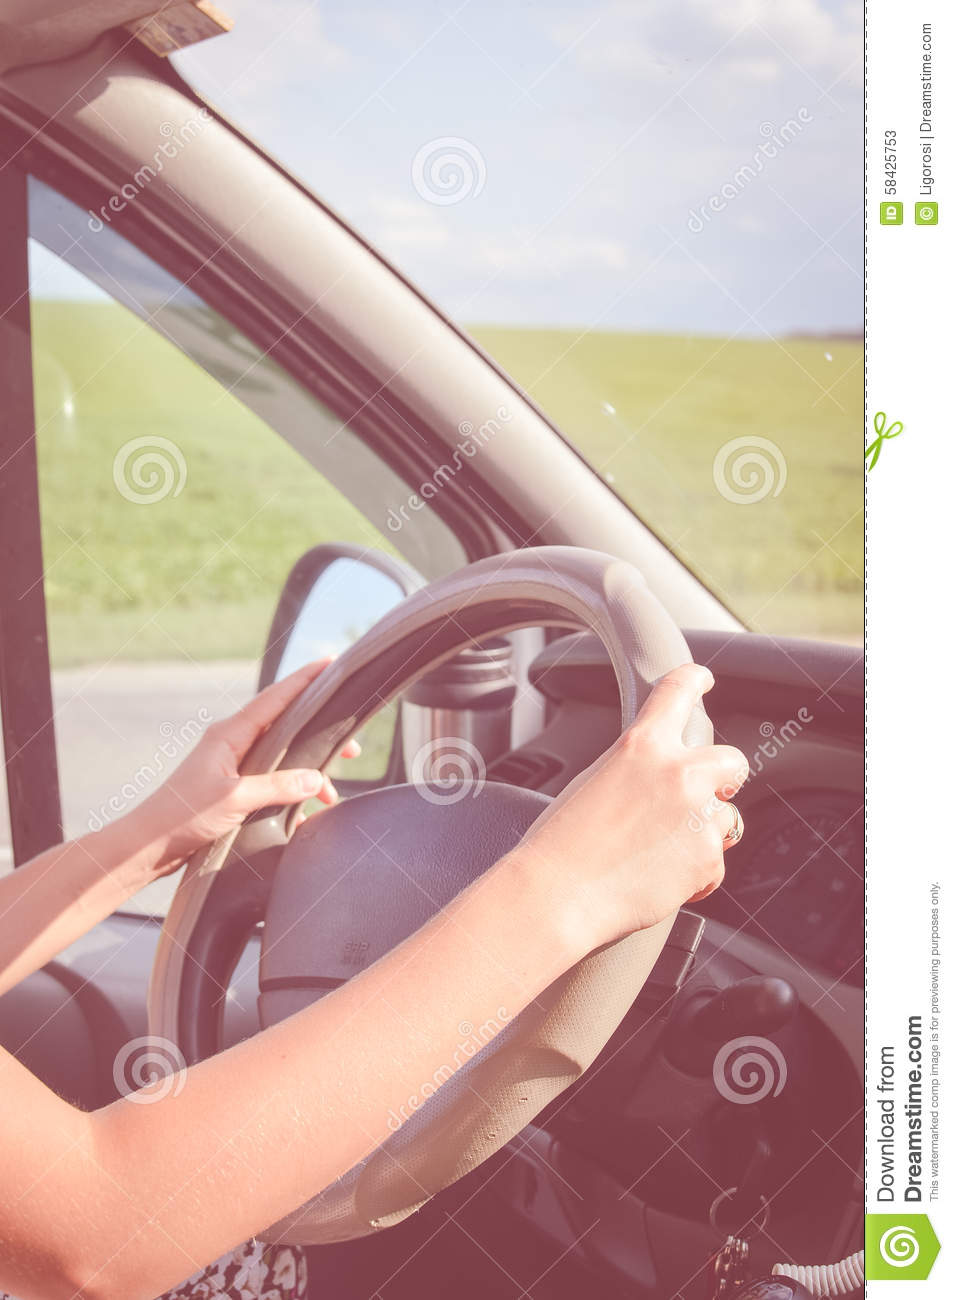 hand of driver holding steering wheel driving fast speed motion stock image. Black Bedroom Furniture Sets. Home Design Ideas